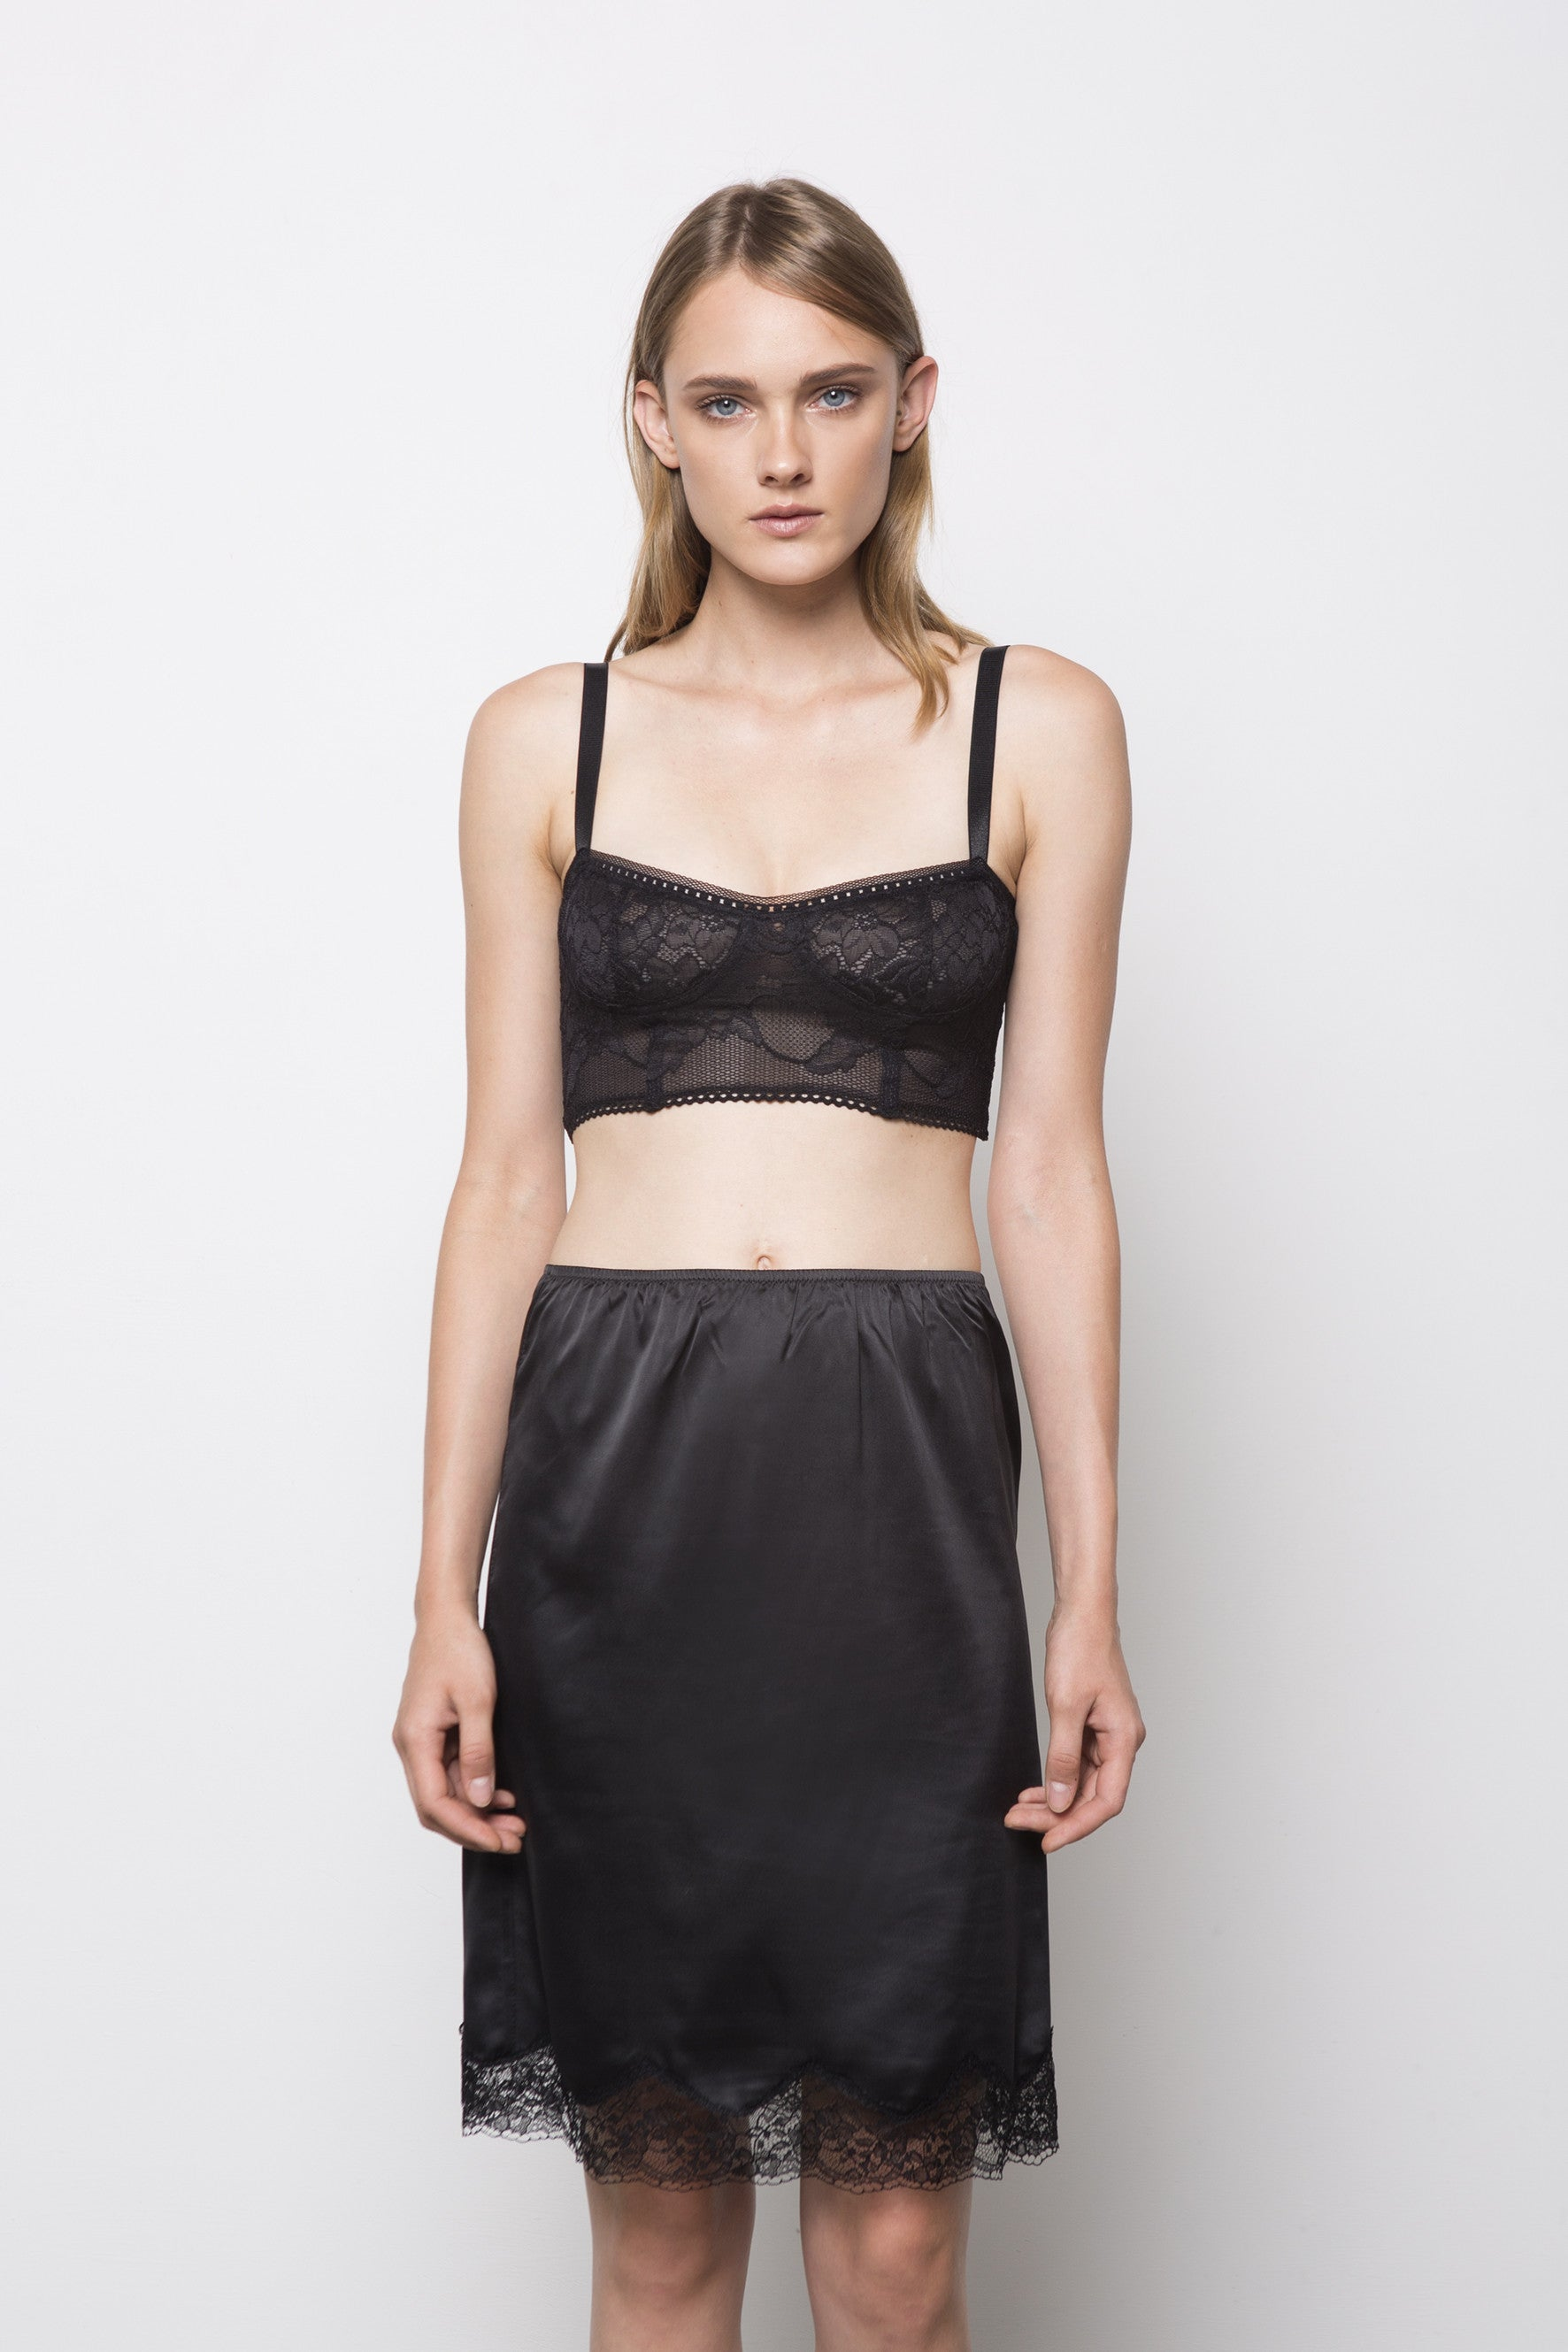 MANO Satin Slip Skirt - Black